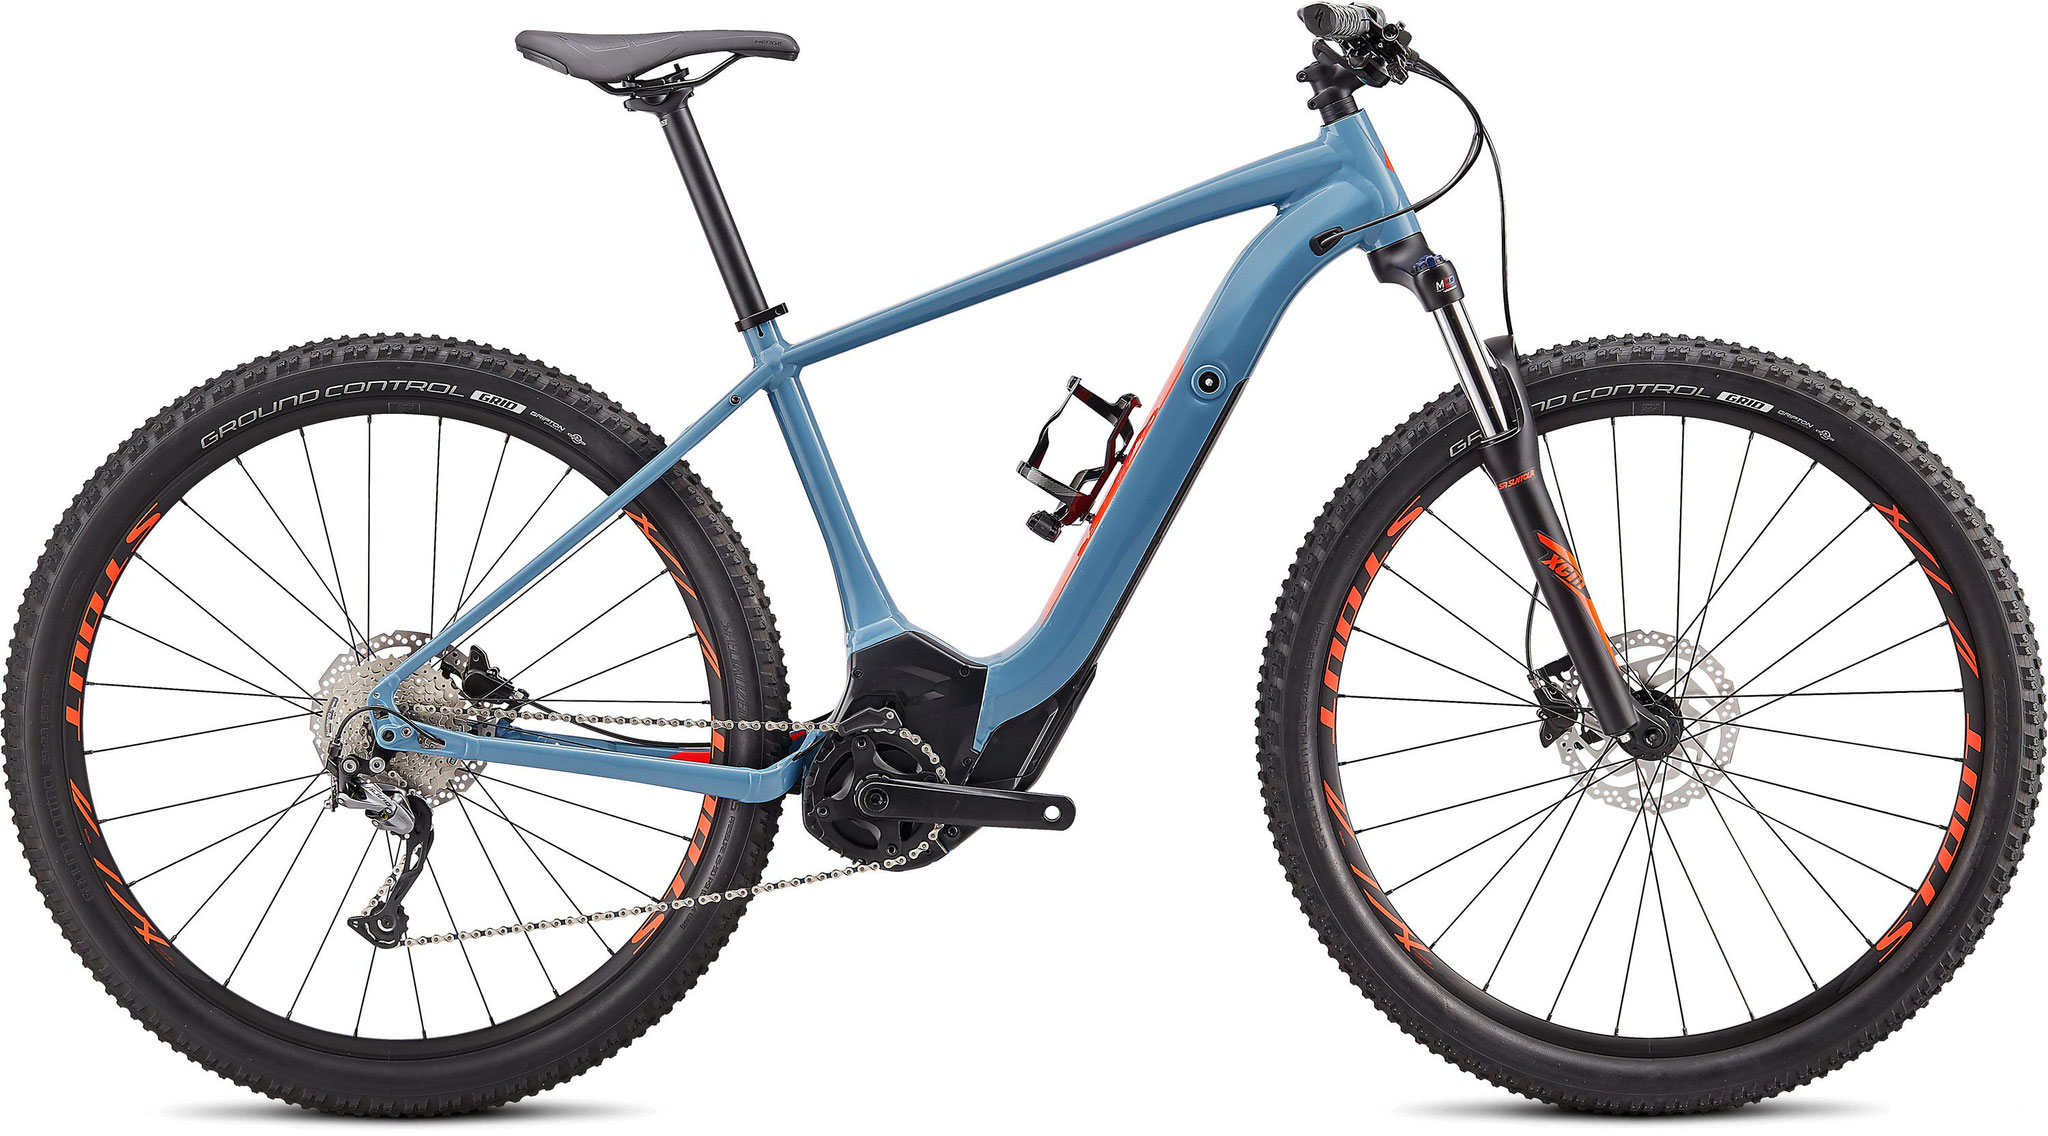 Specialized Turbo Levo Hardtail - Storm Grey, Rocket Red